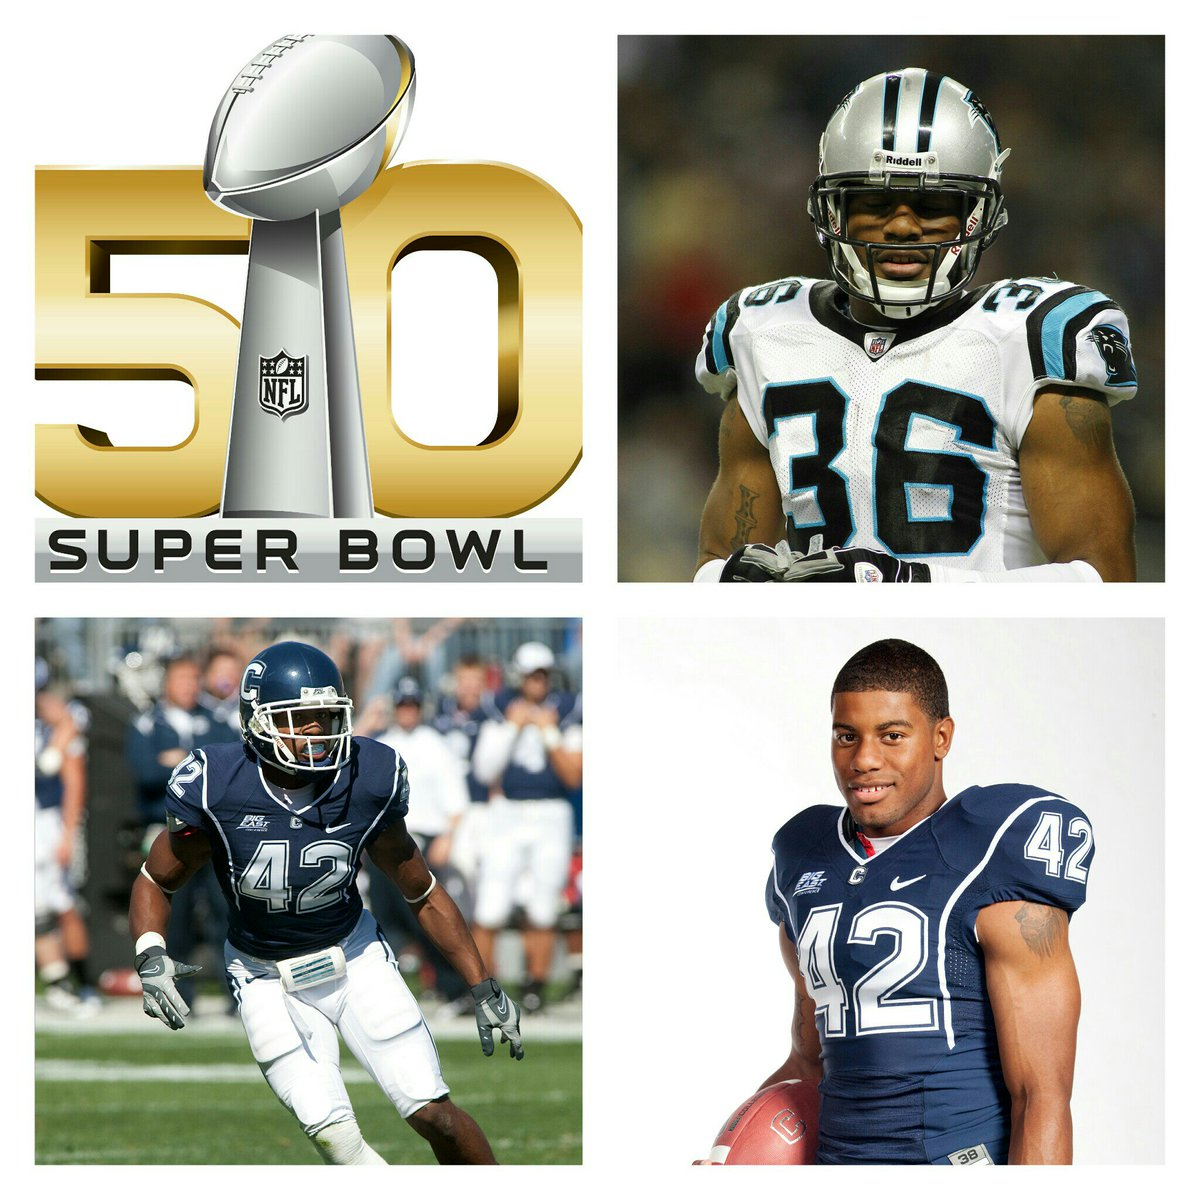 Congratulations to former Husky Robert McClain and the @Panthers for advancing to @SuperBowl #UConnNation https://t.co/mESVX4uGh6